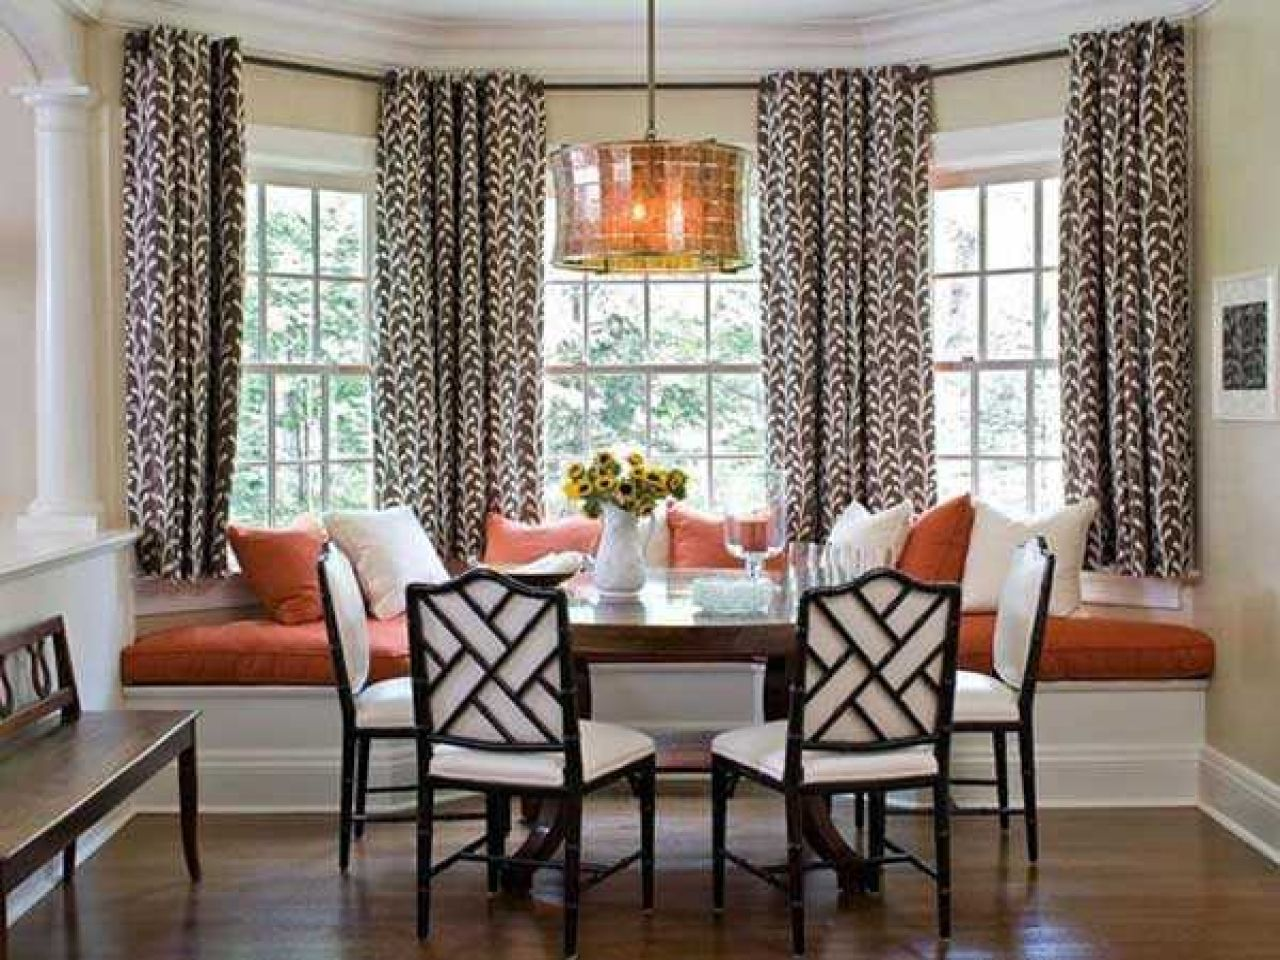 Bay Window With Seat Dining Room With Bay Window Seat Dining Room Stunning Window Seat In Dining Room Review